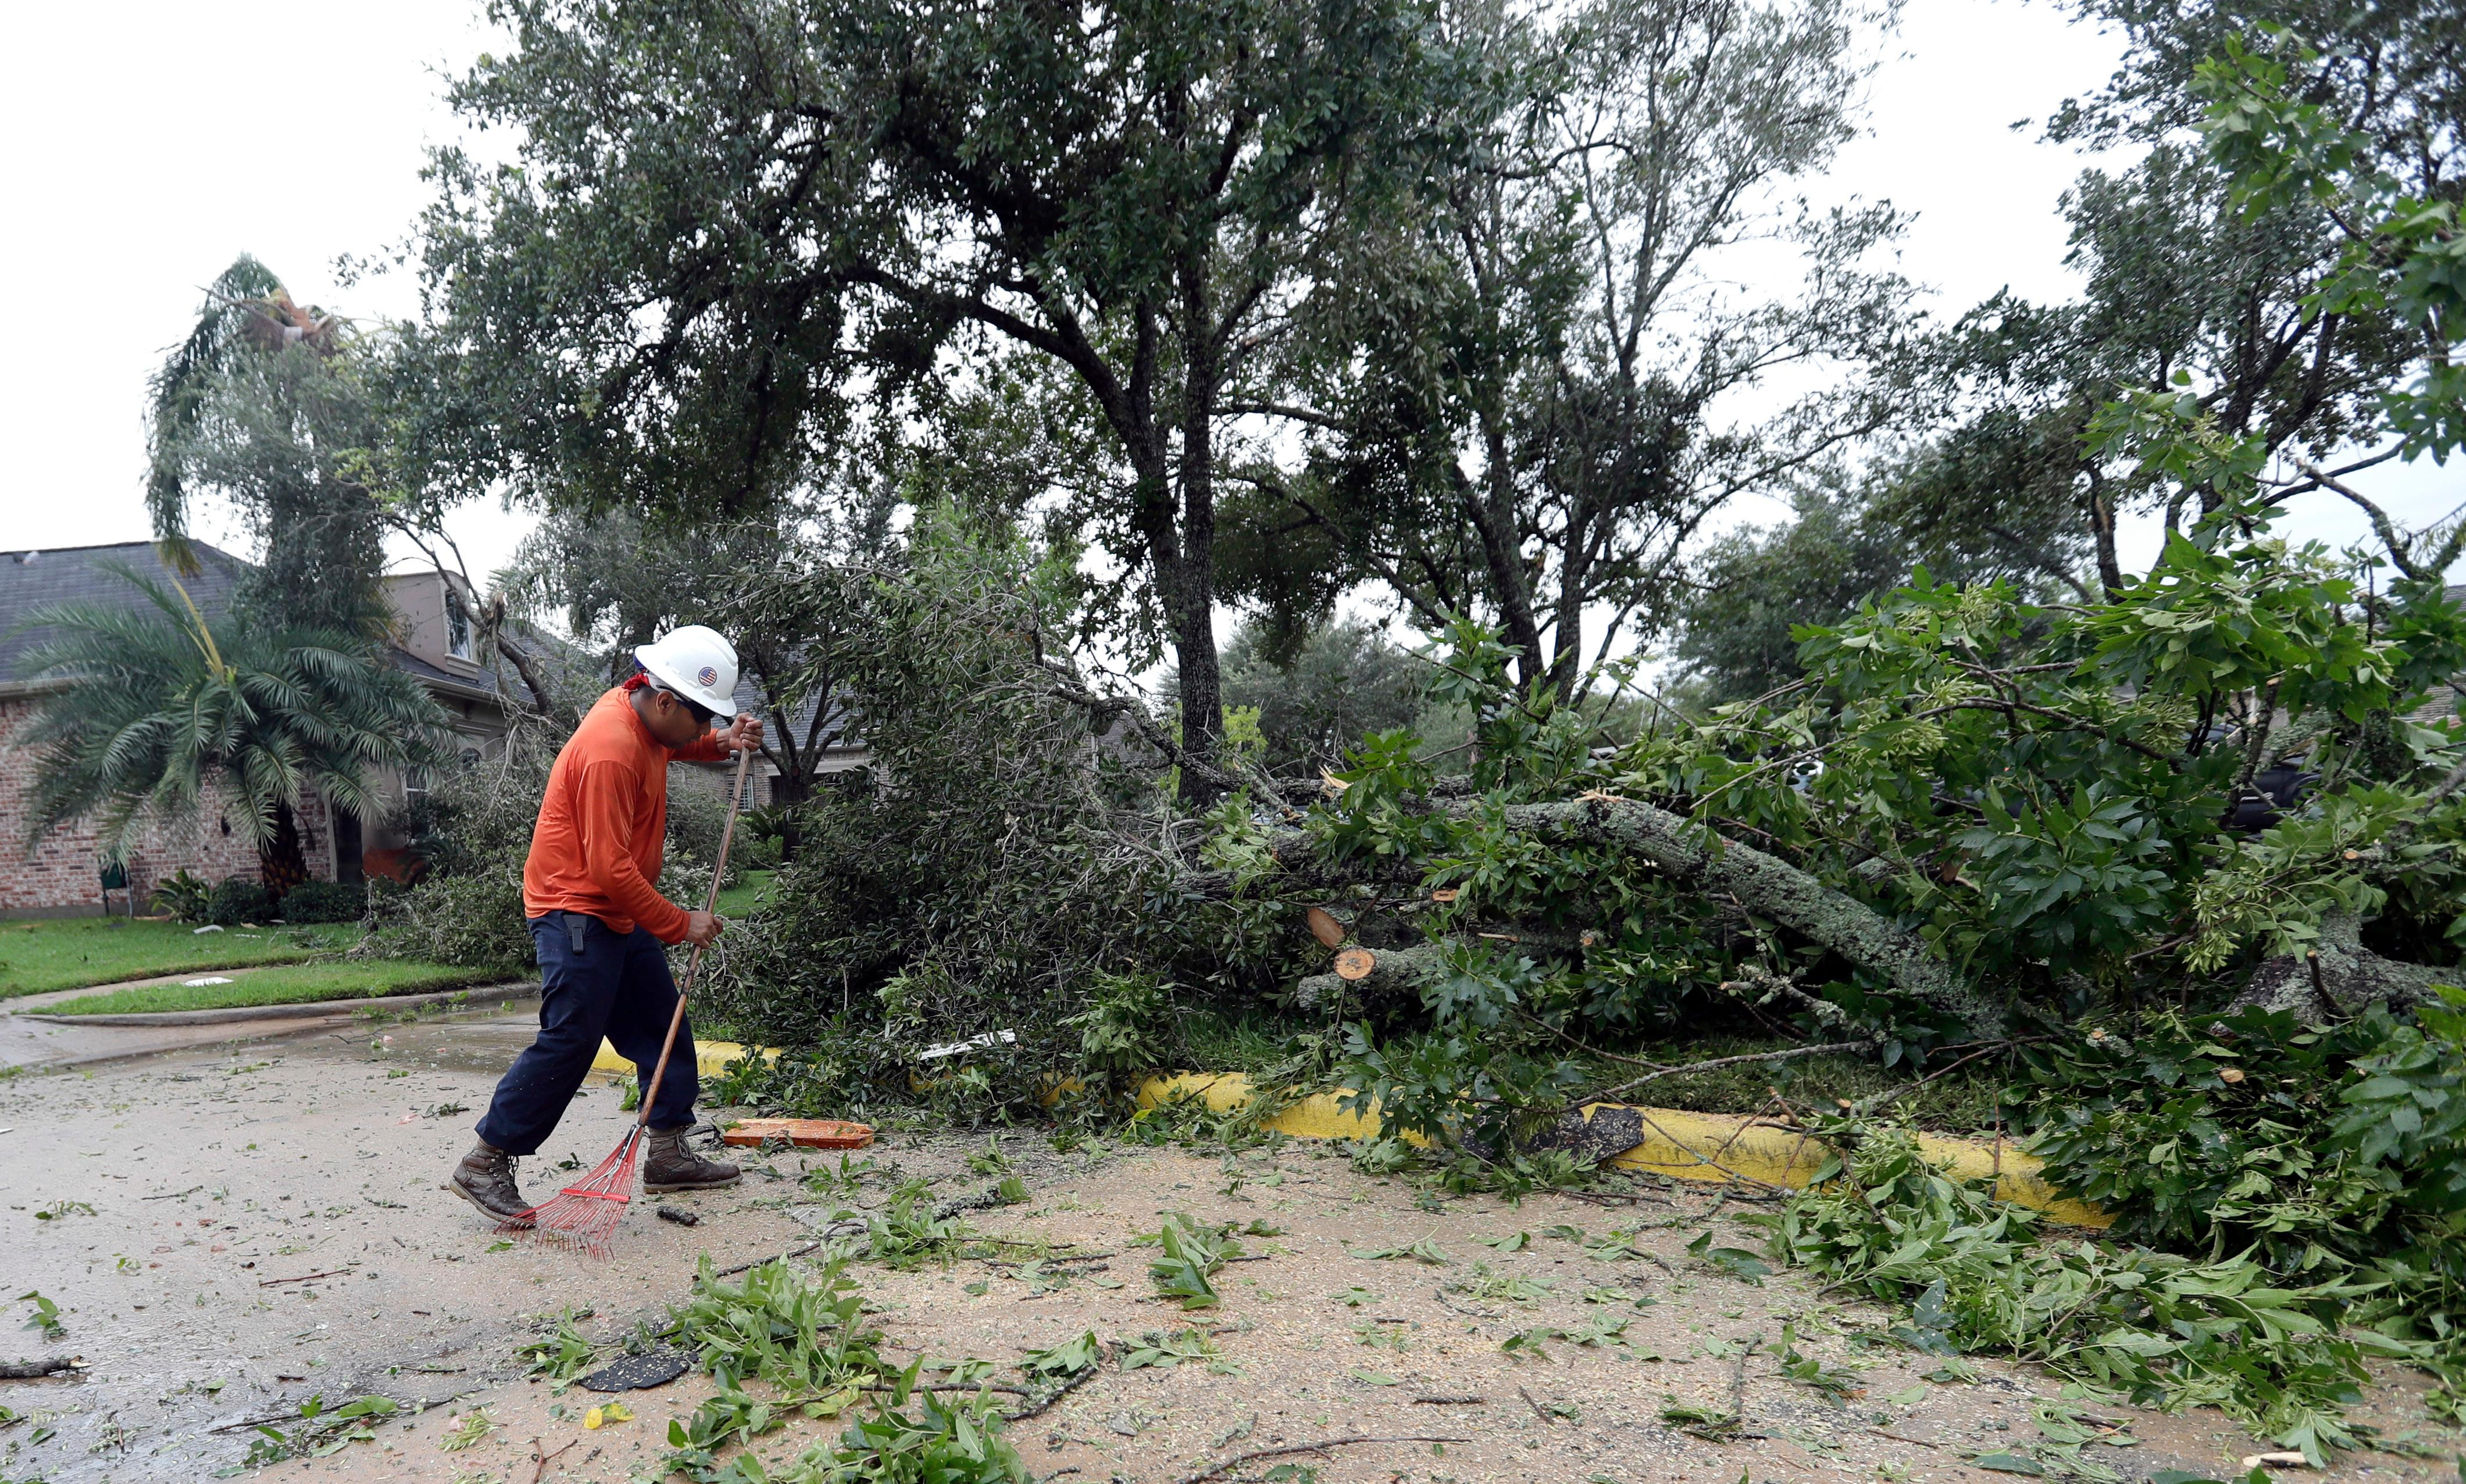 Abel Carreno cleans up after Hurricane Harvey Saturday, Aug. 26, 2017, in Missouri City, Texas.  Harvey rolled over the Texas Gulf Coast on Saturday, smashing homes and businesses and lashing the shore with wind and rain so intense that drivers were forced off the road because they could not see in front of them.  (AP Photo/David J. Phillip)